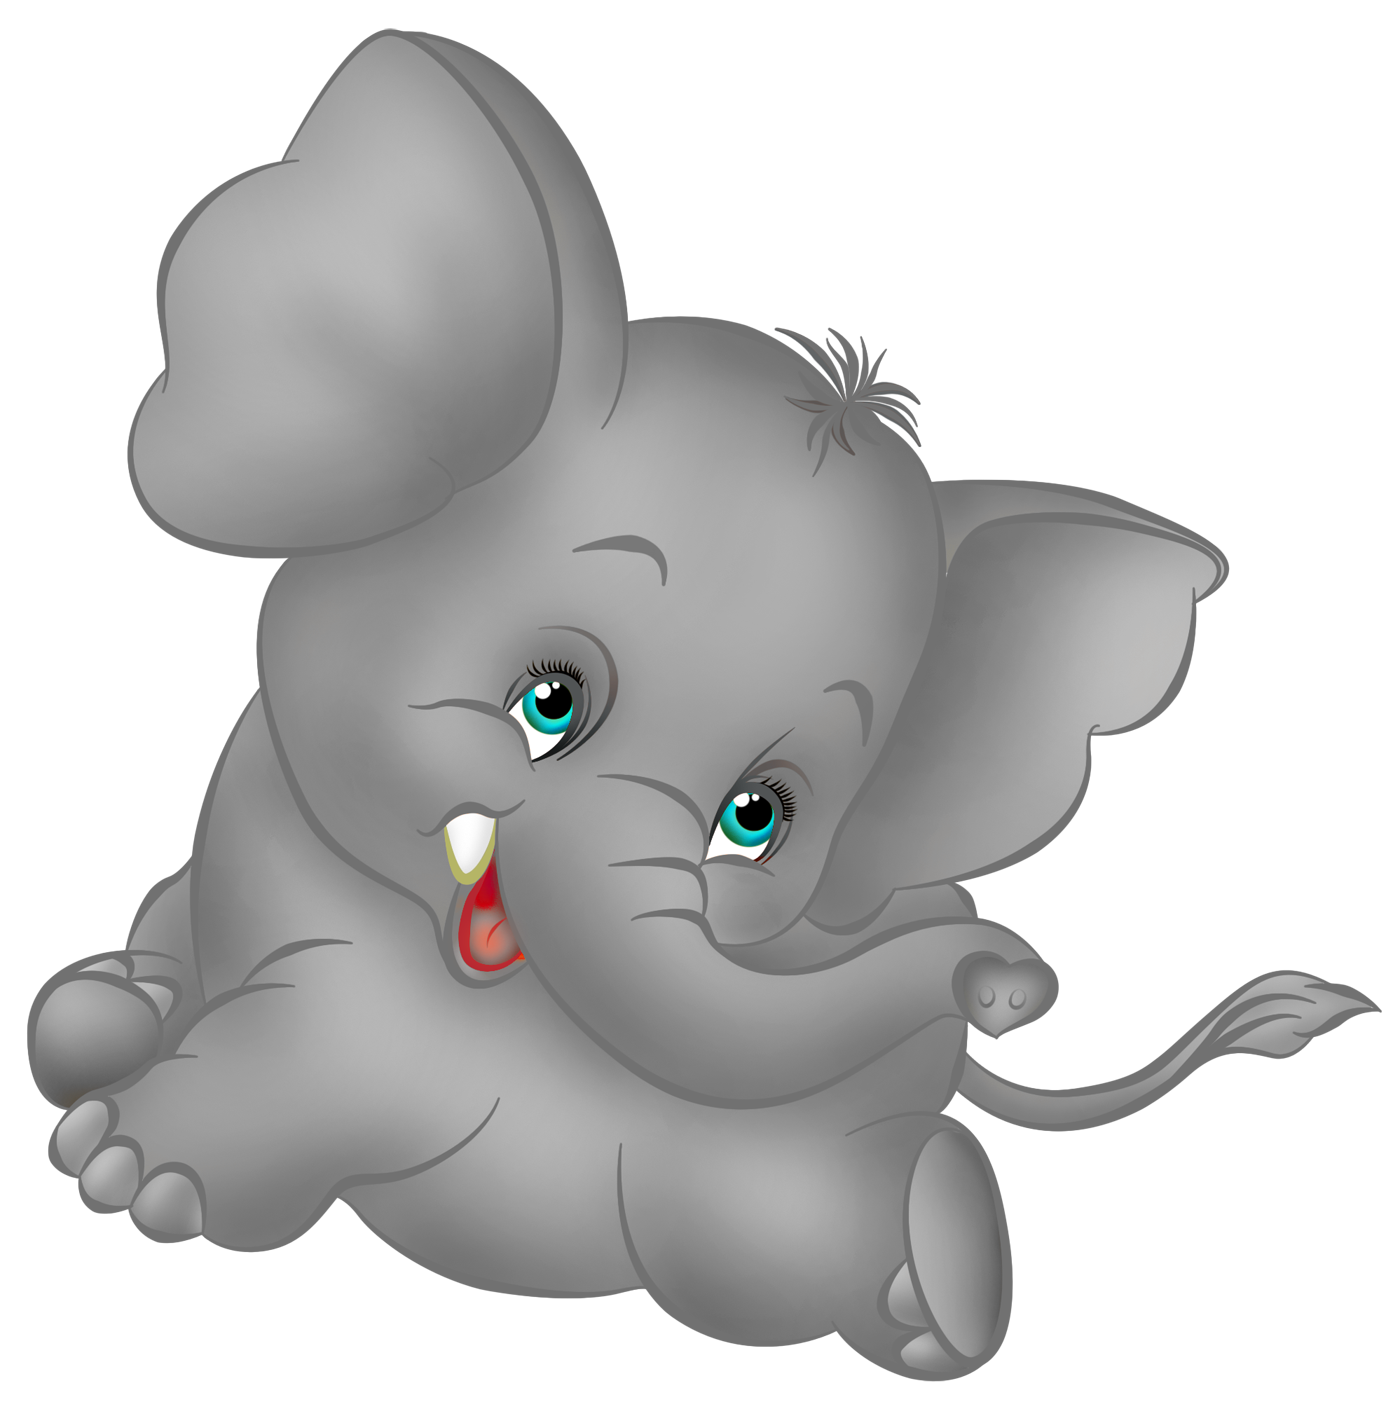 grey elephant cartoon free clipart elephants roll tide free clipart of cowboy hats free clip art of cows in chutes